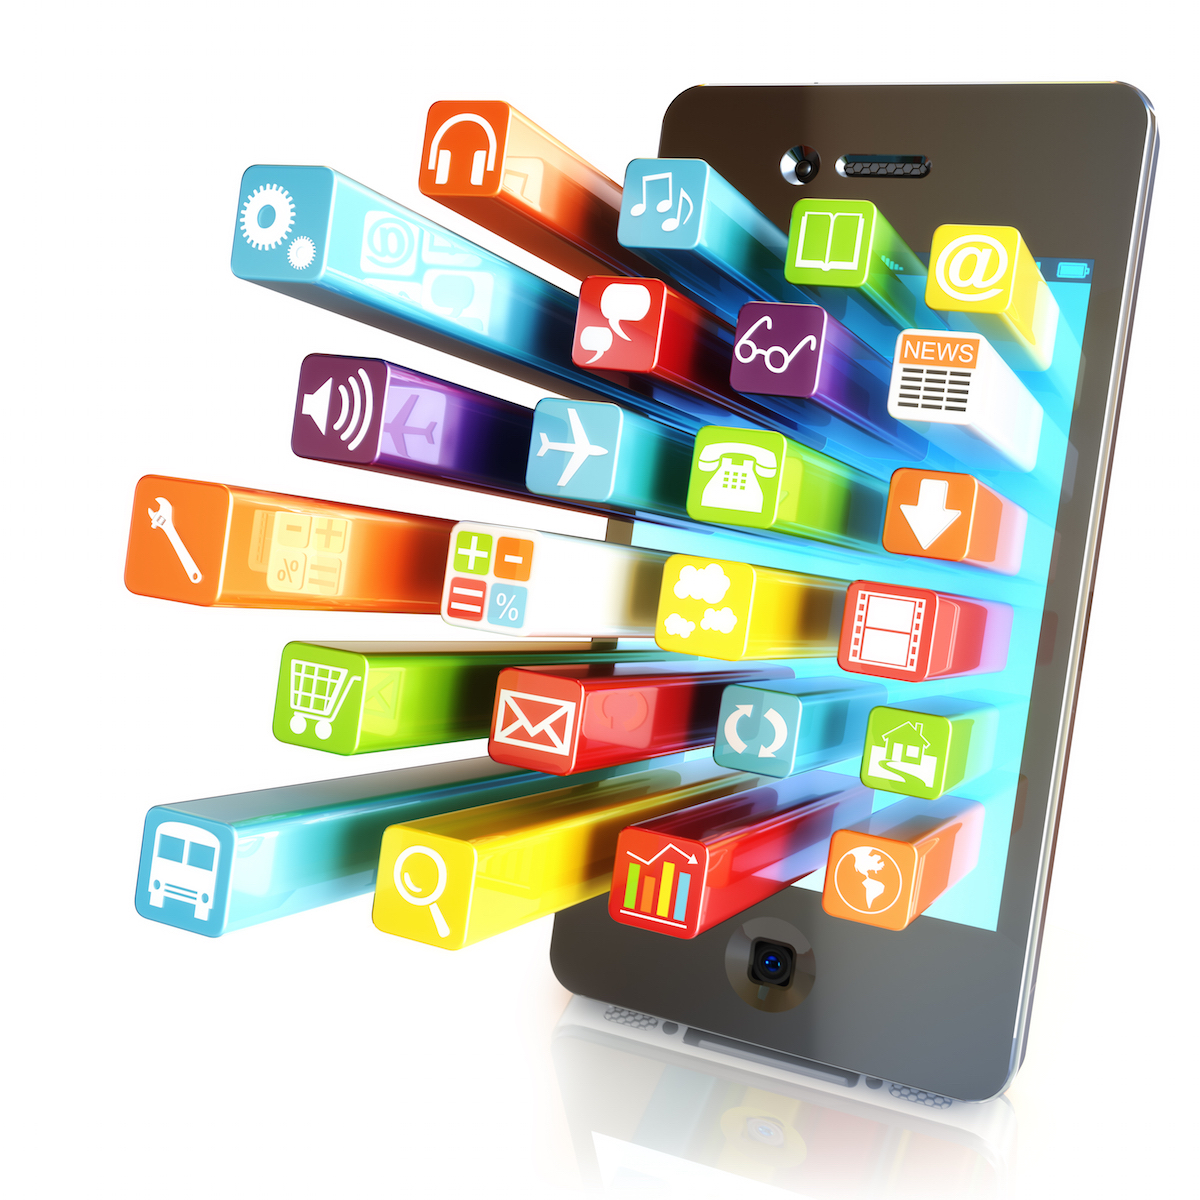 Mobile apps a necessity